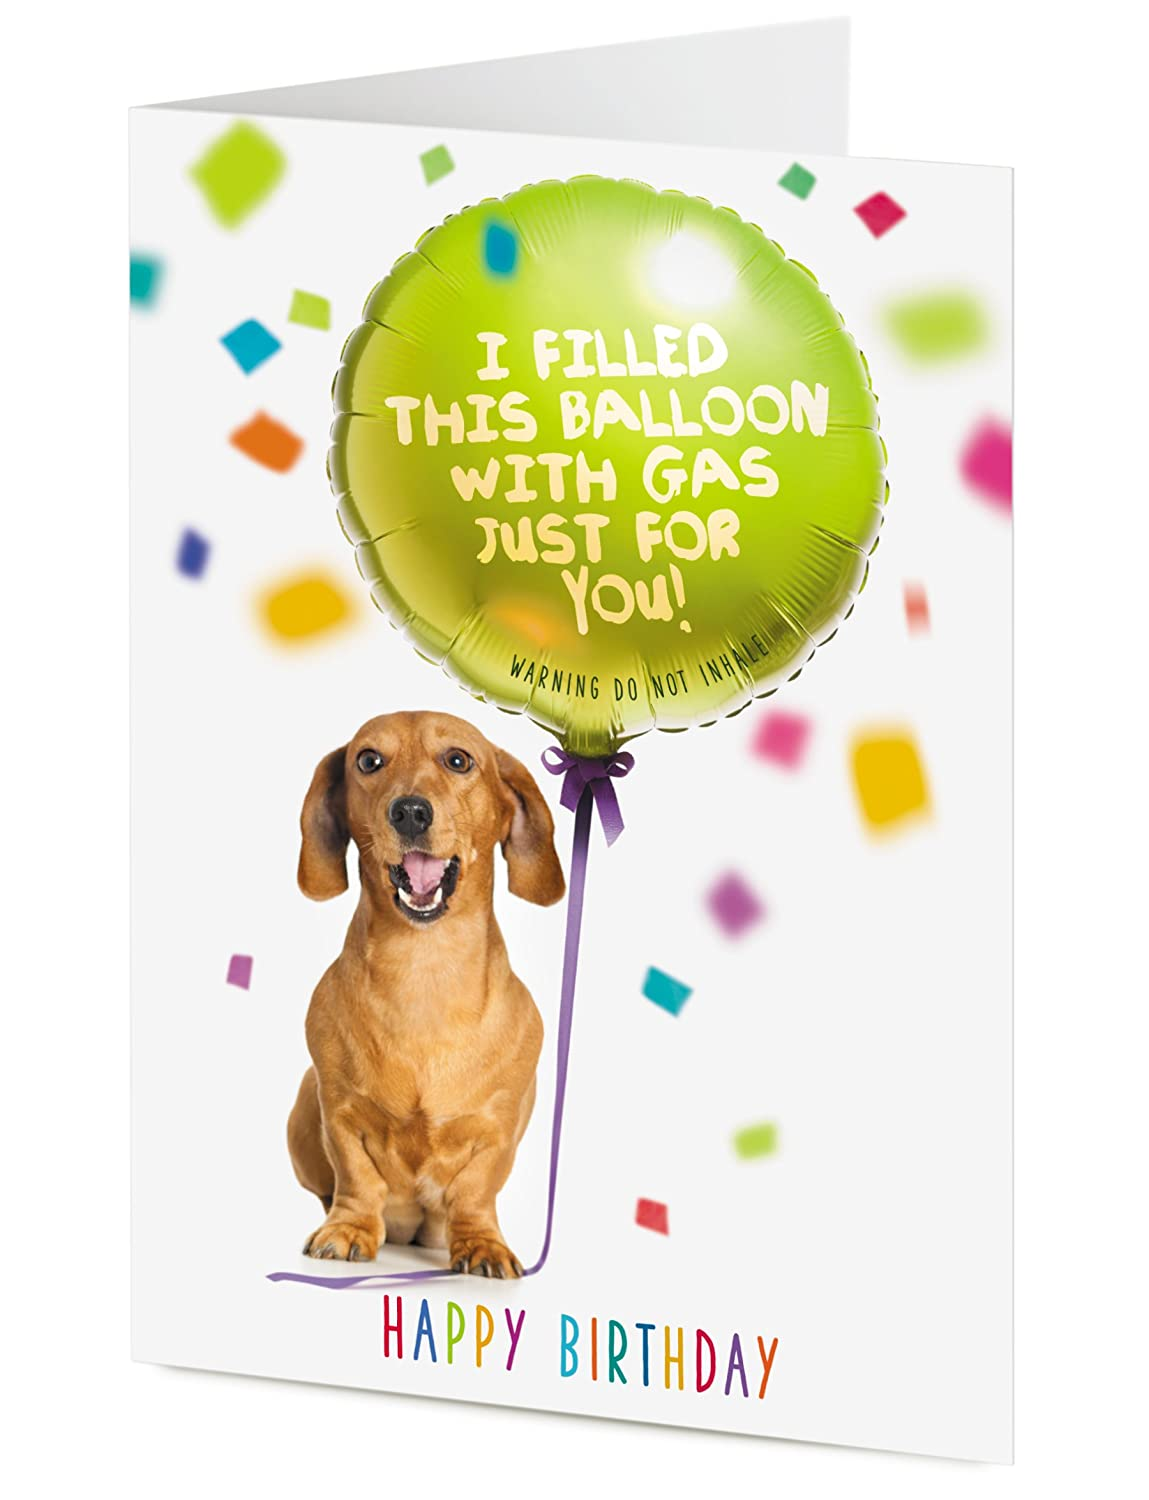 Funny Dachshund Sausage Dog Holding A Balloon I FILLED THIS BALLOON WITH GAS JUST FOR YOU